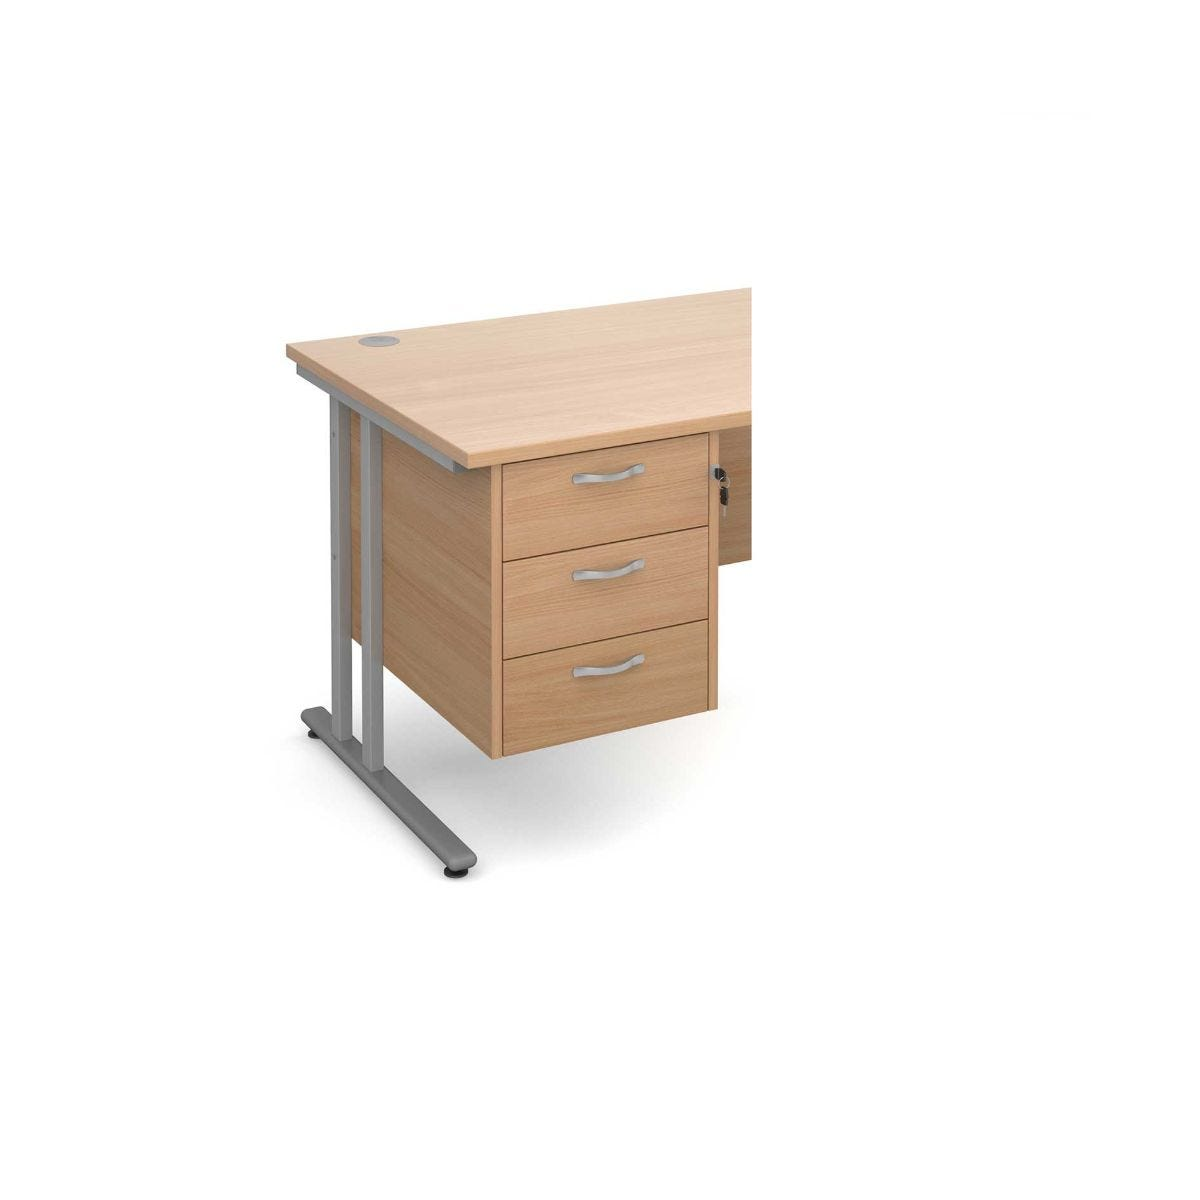 Image of 3 Drawer Fixed Pedestal with Silver Handles, Beech